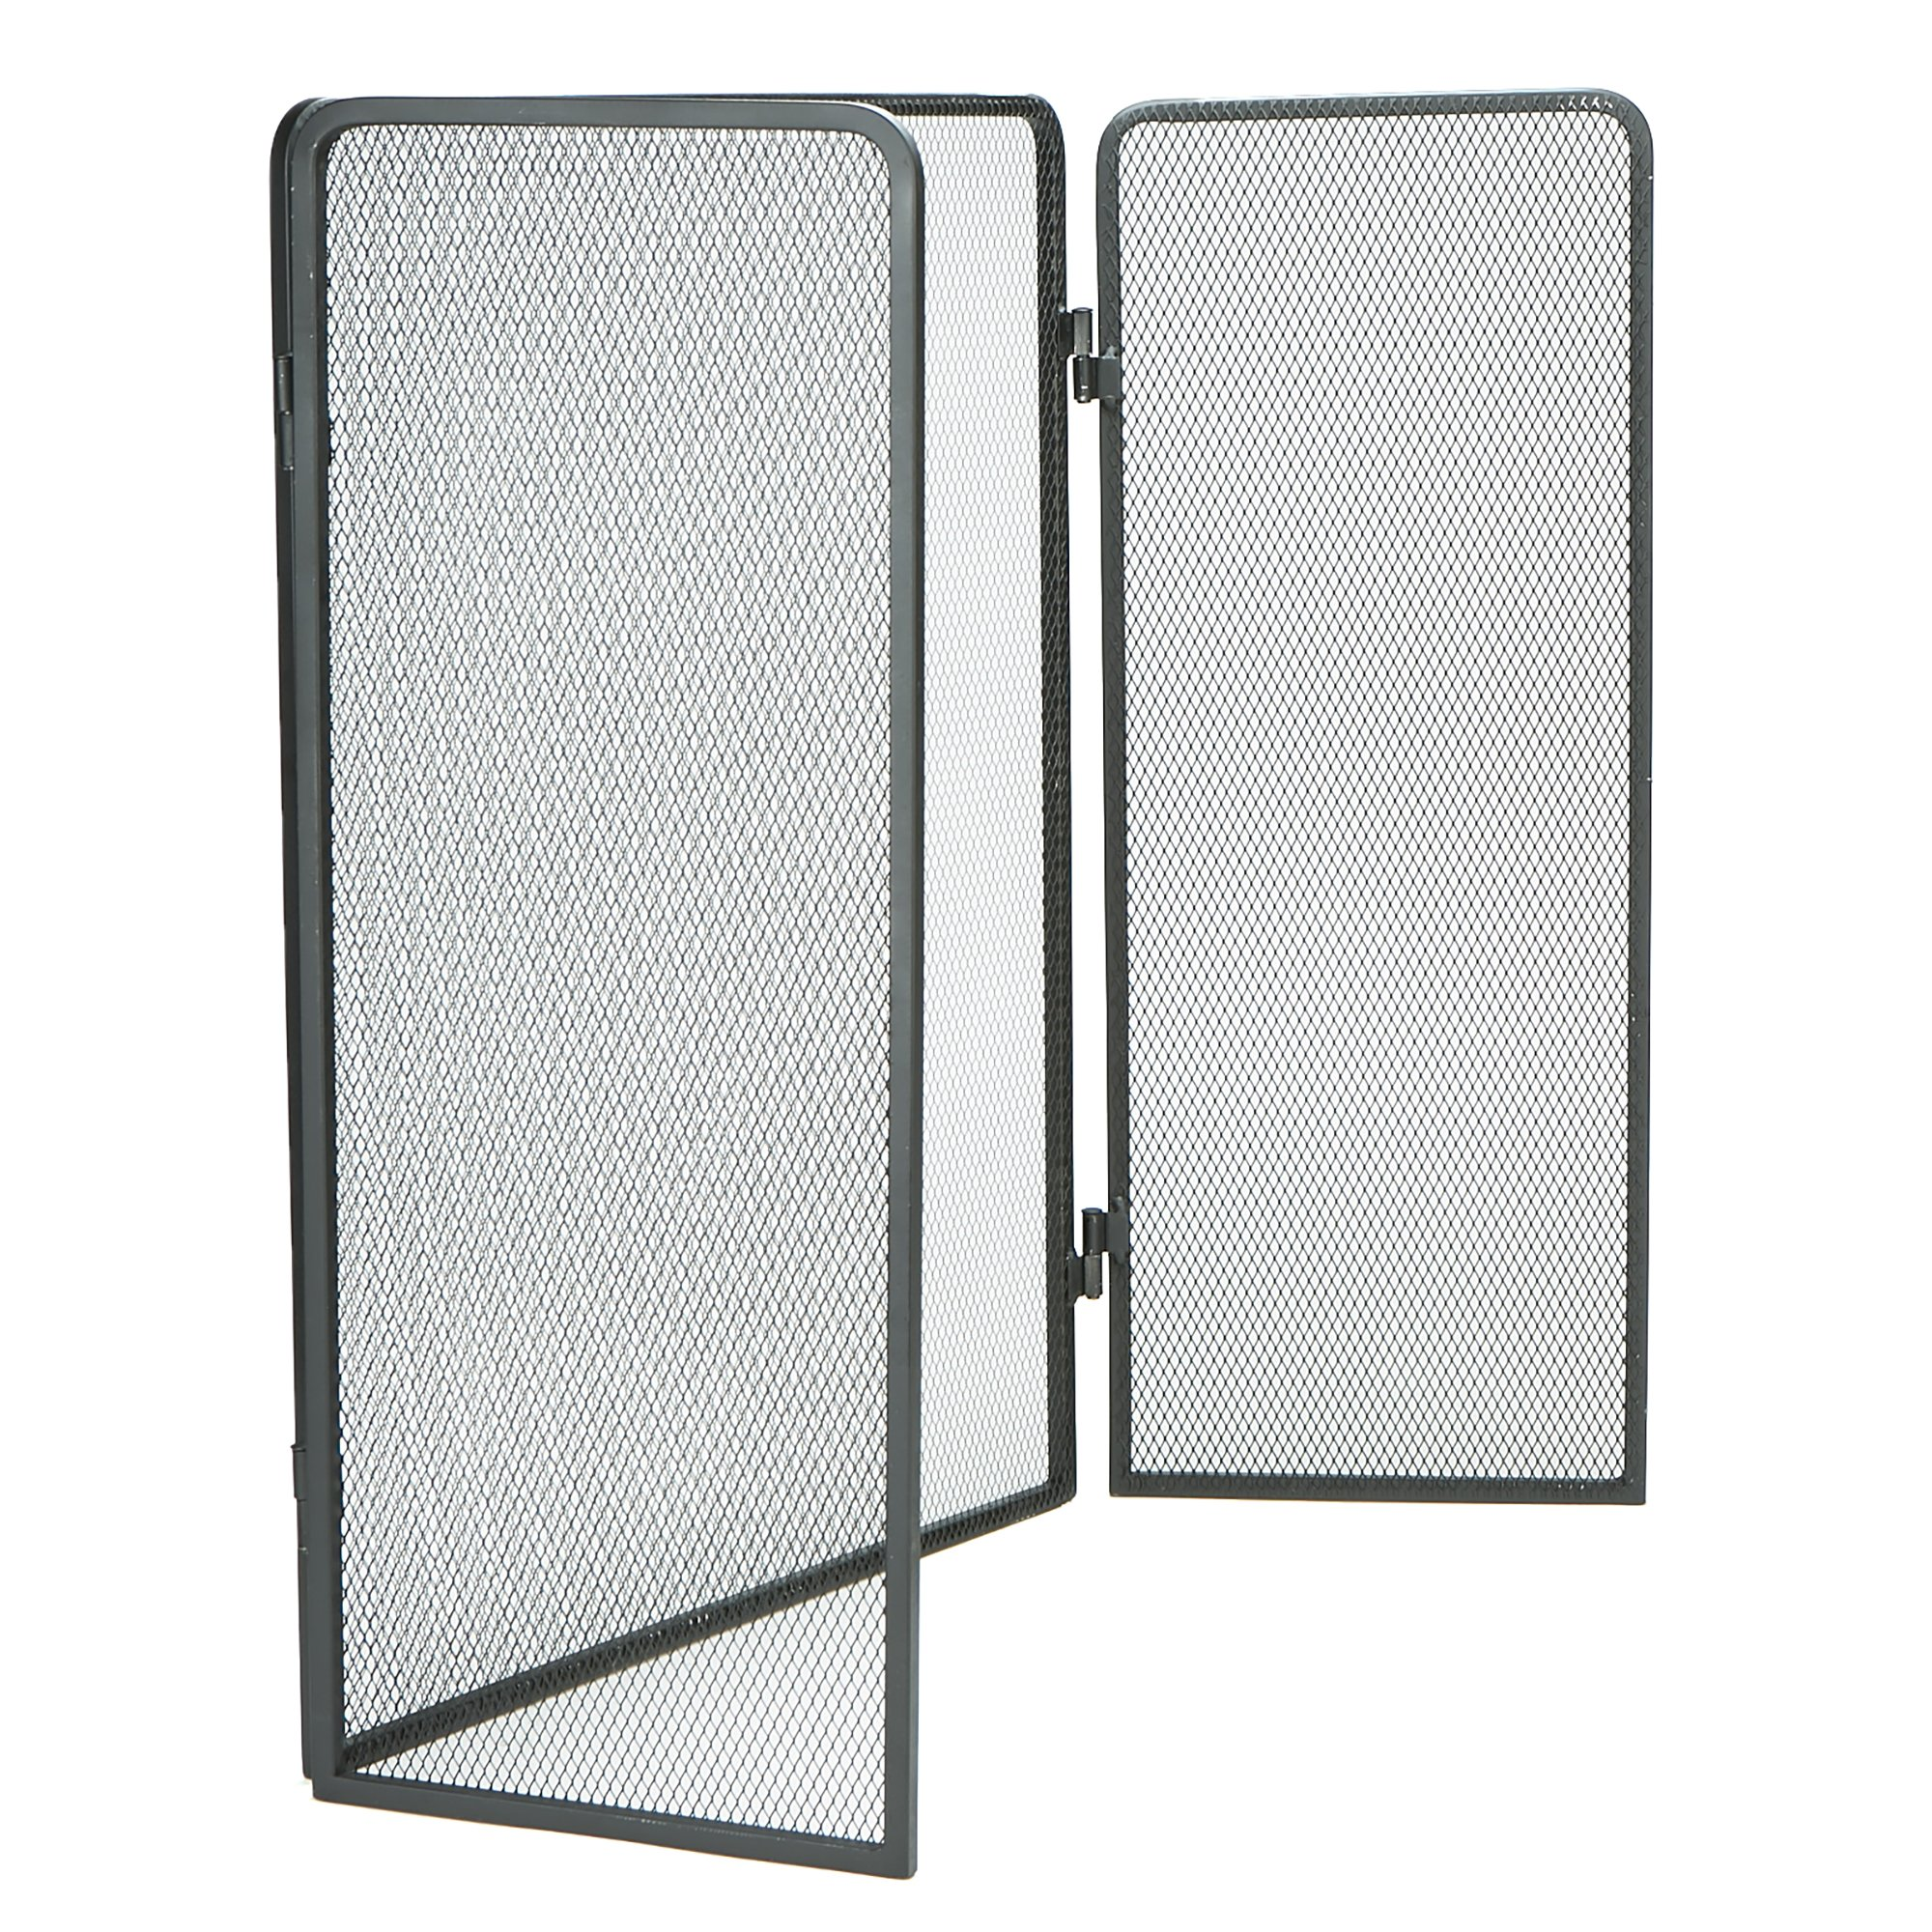 Mind Reader FIRESCREEN-BLK 3 Panel Fire Place Screen Door Panel with Double Bar Black Finish, Black by Mind Reader